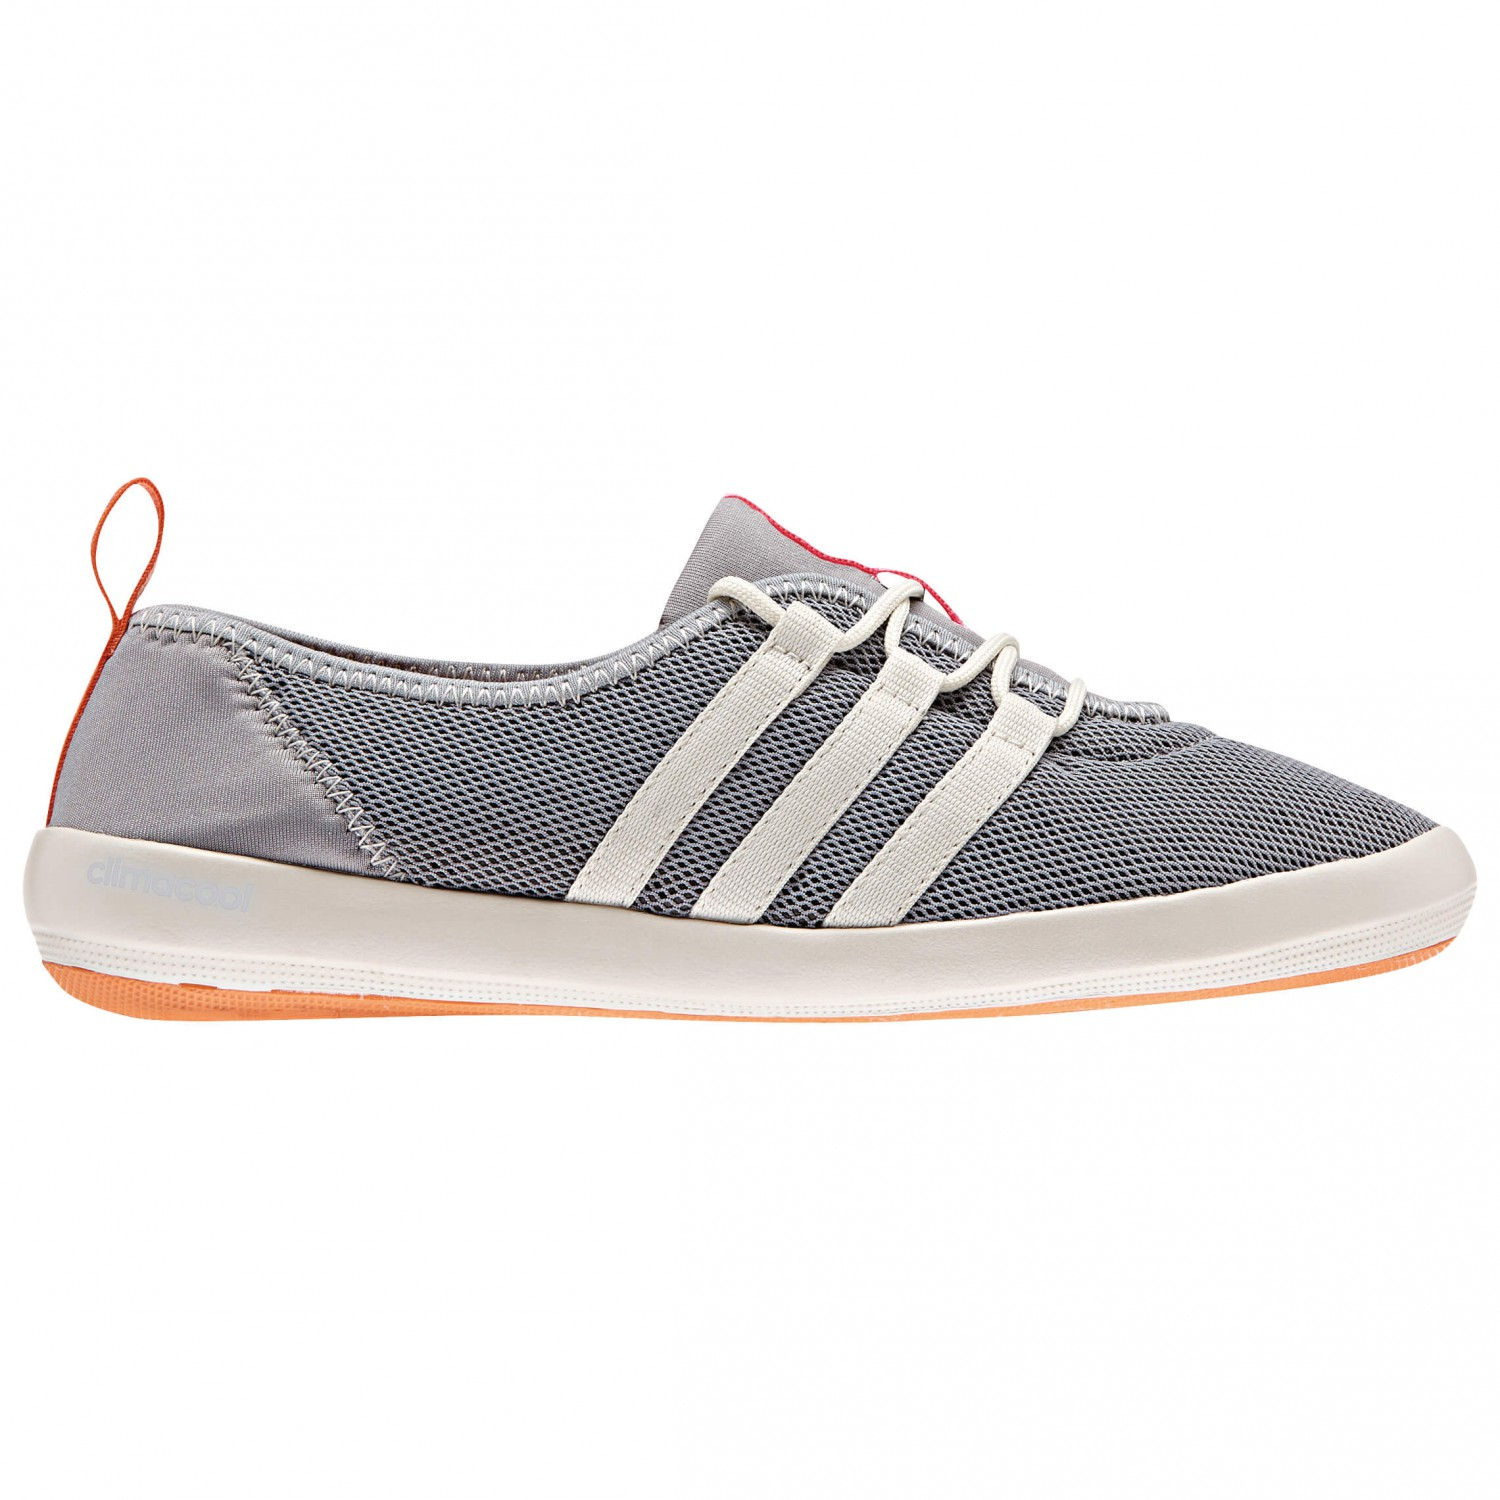 74e04e2a8766 Adidas Terrex CC Boat Sleek - Water Shoes Women s